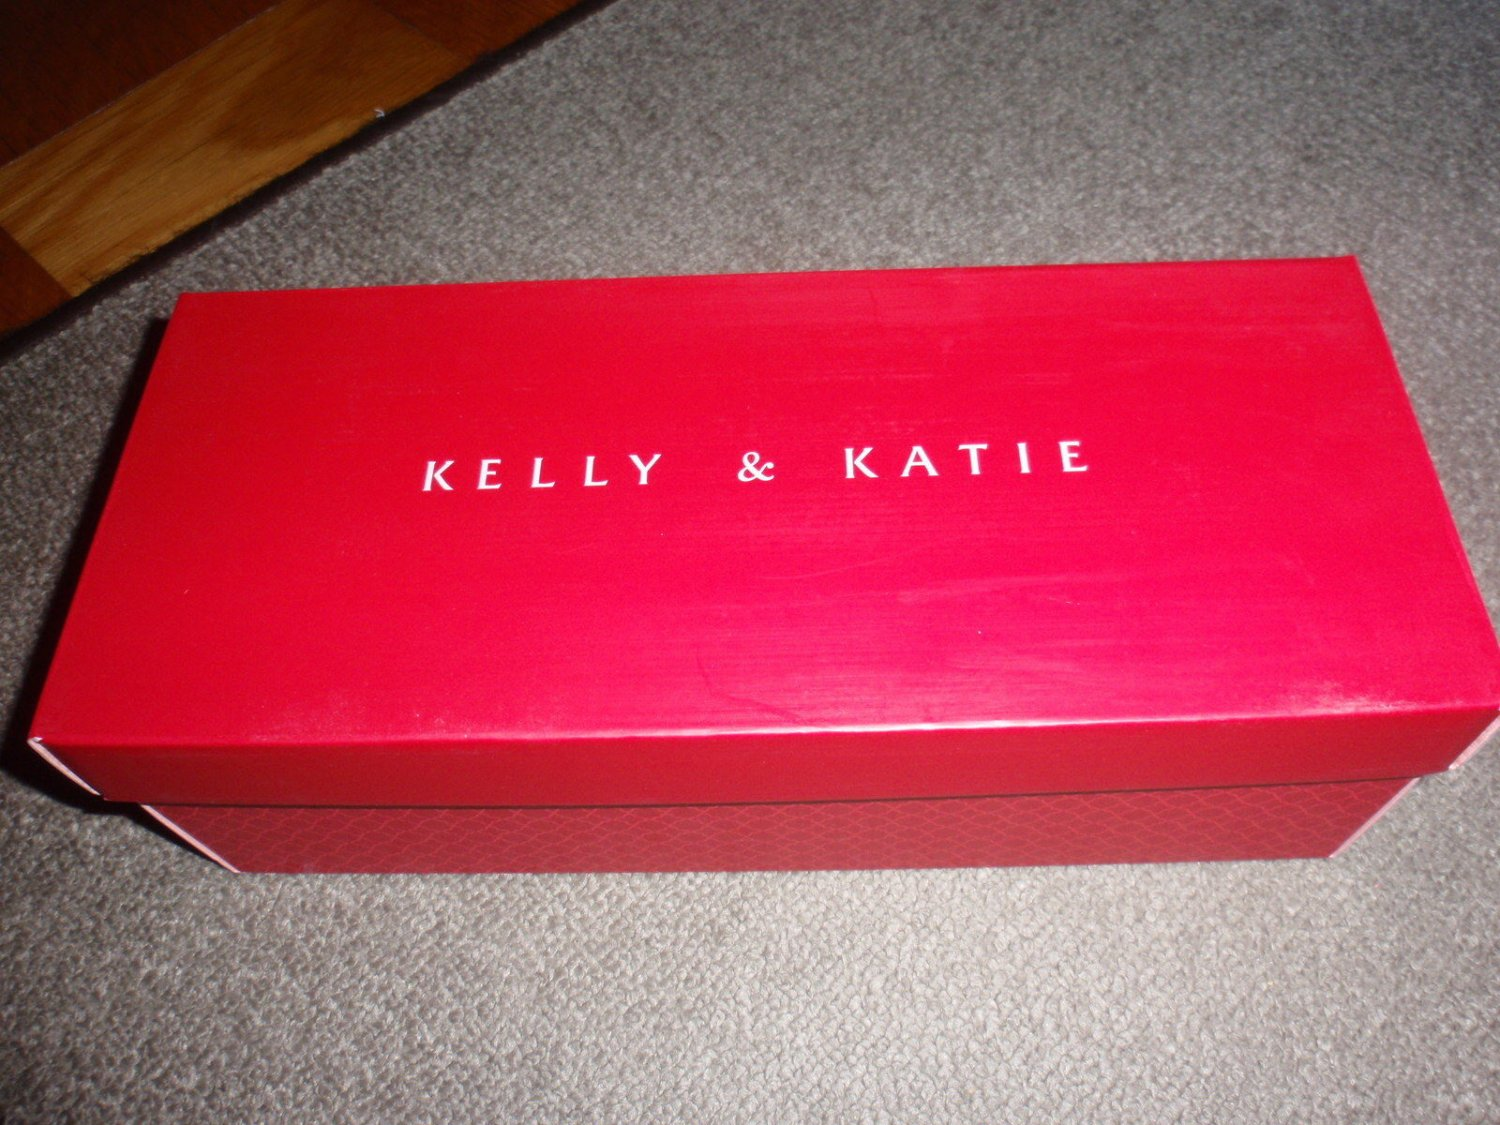 KELLY & KATIE Shoe Gift Box - RED - EMPTY BOX - size 12 1/2 x 5 1/8 x 4